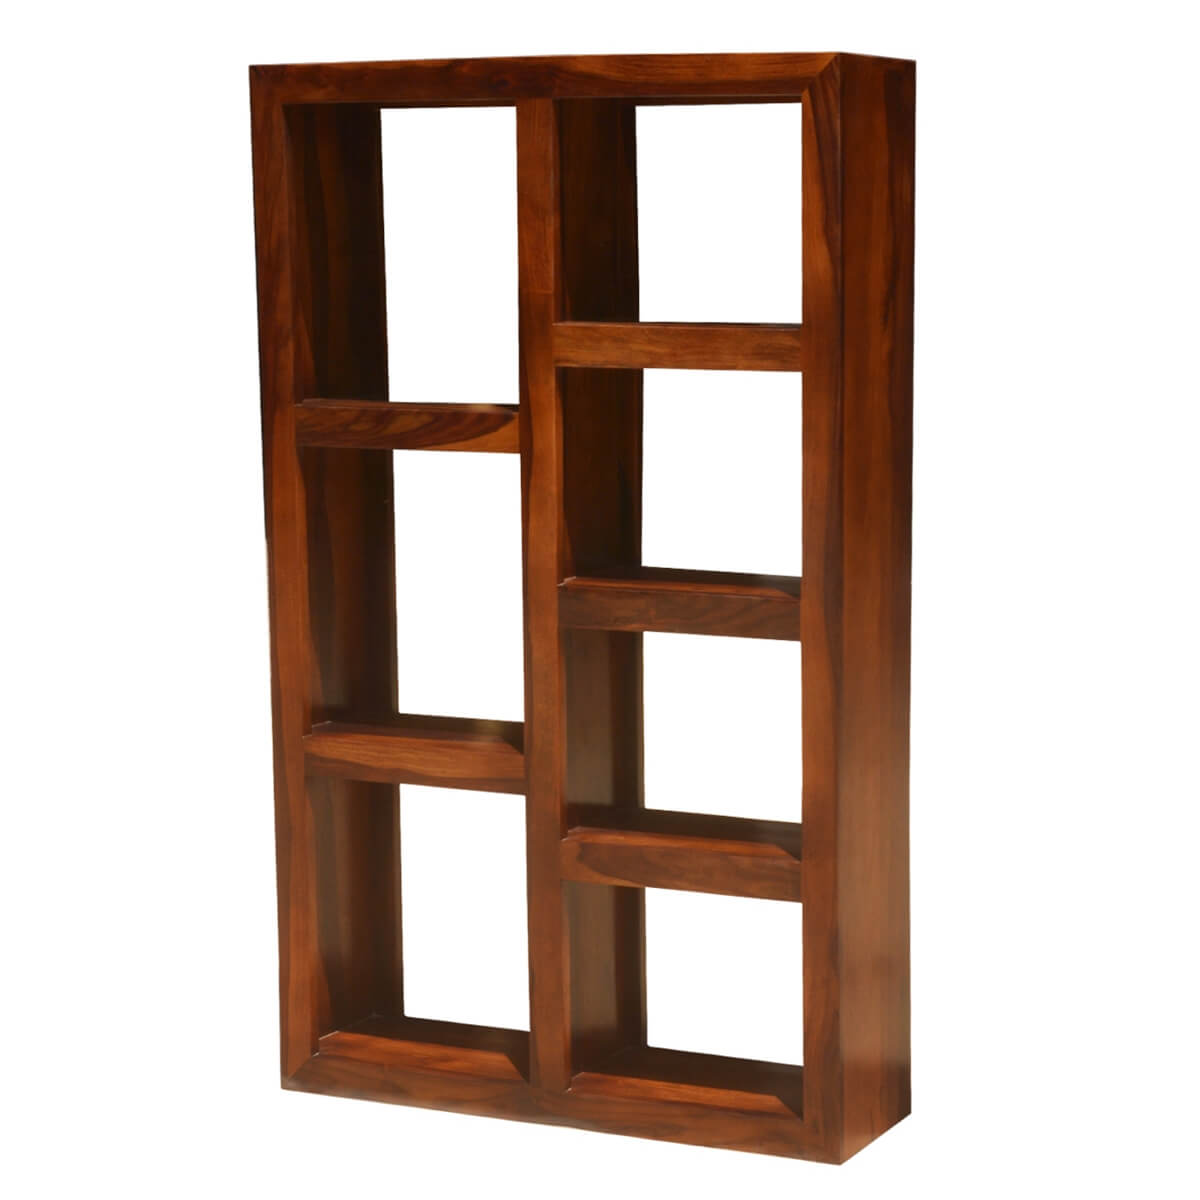 Duarte Rustic Solid Wood 7 Shelf Open Cube Bookcase